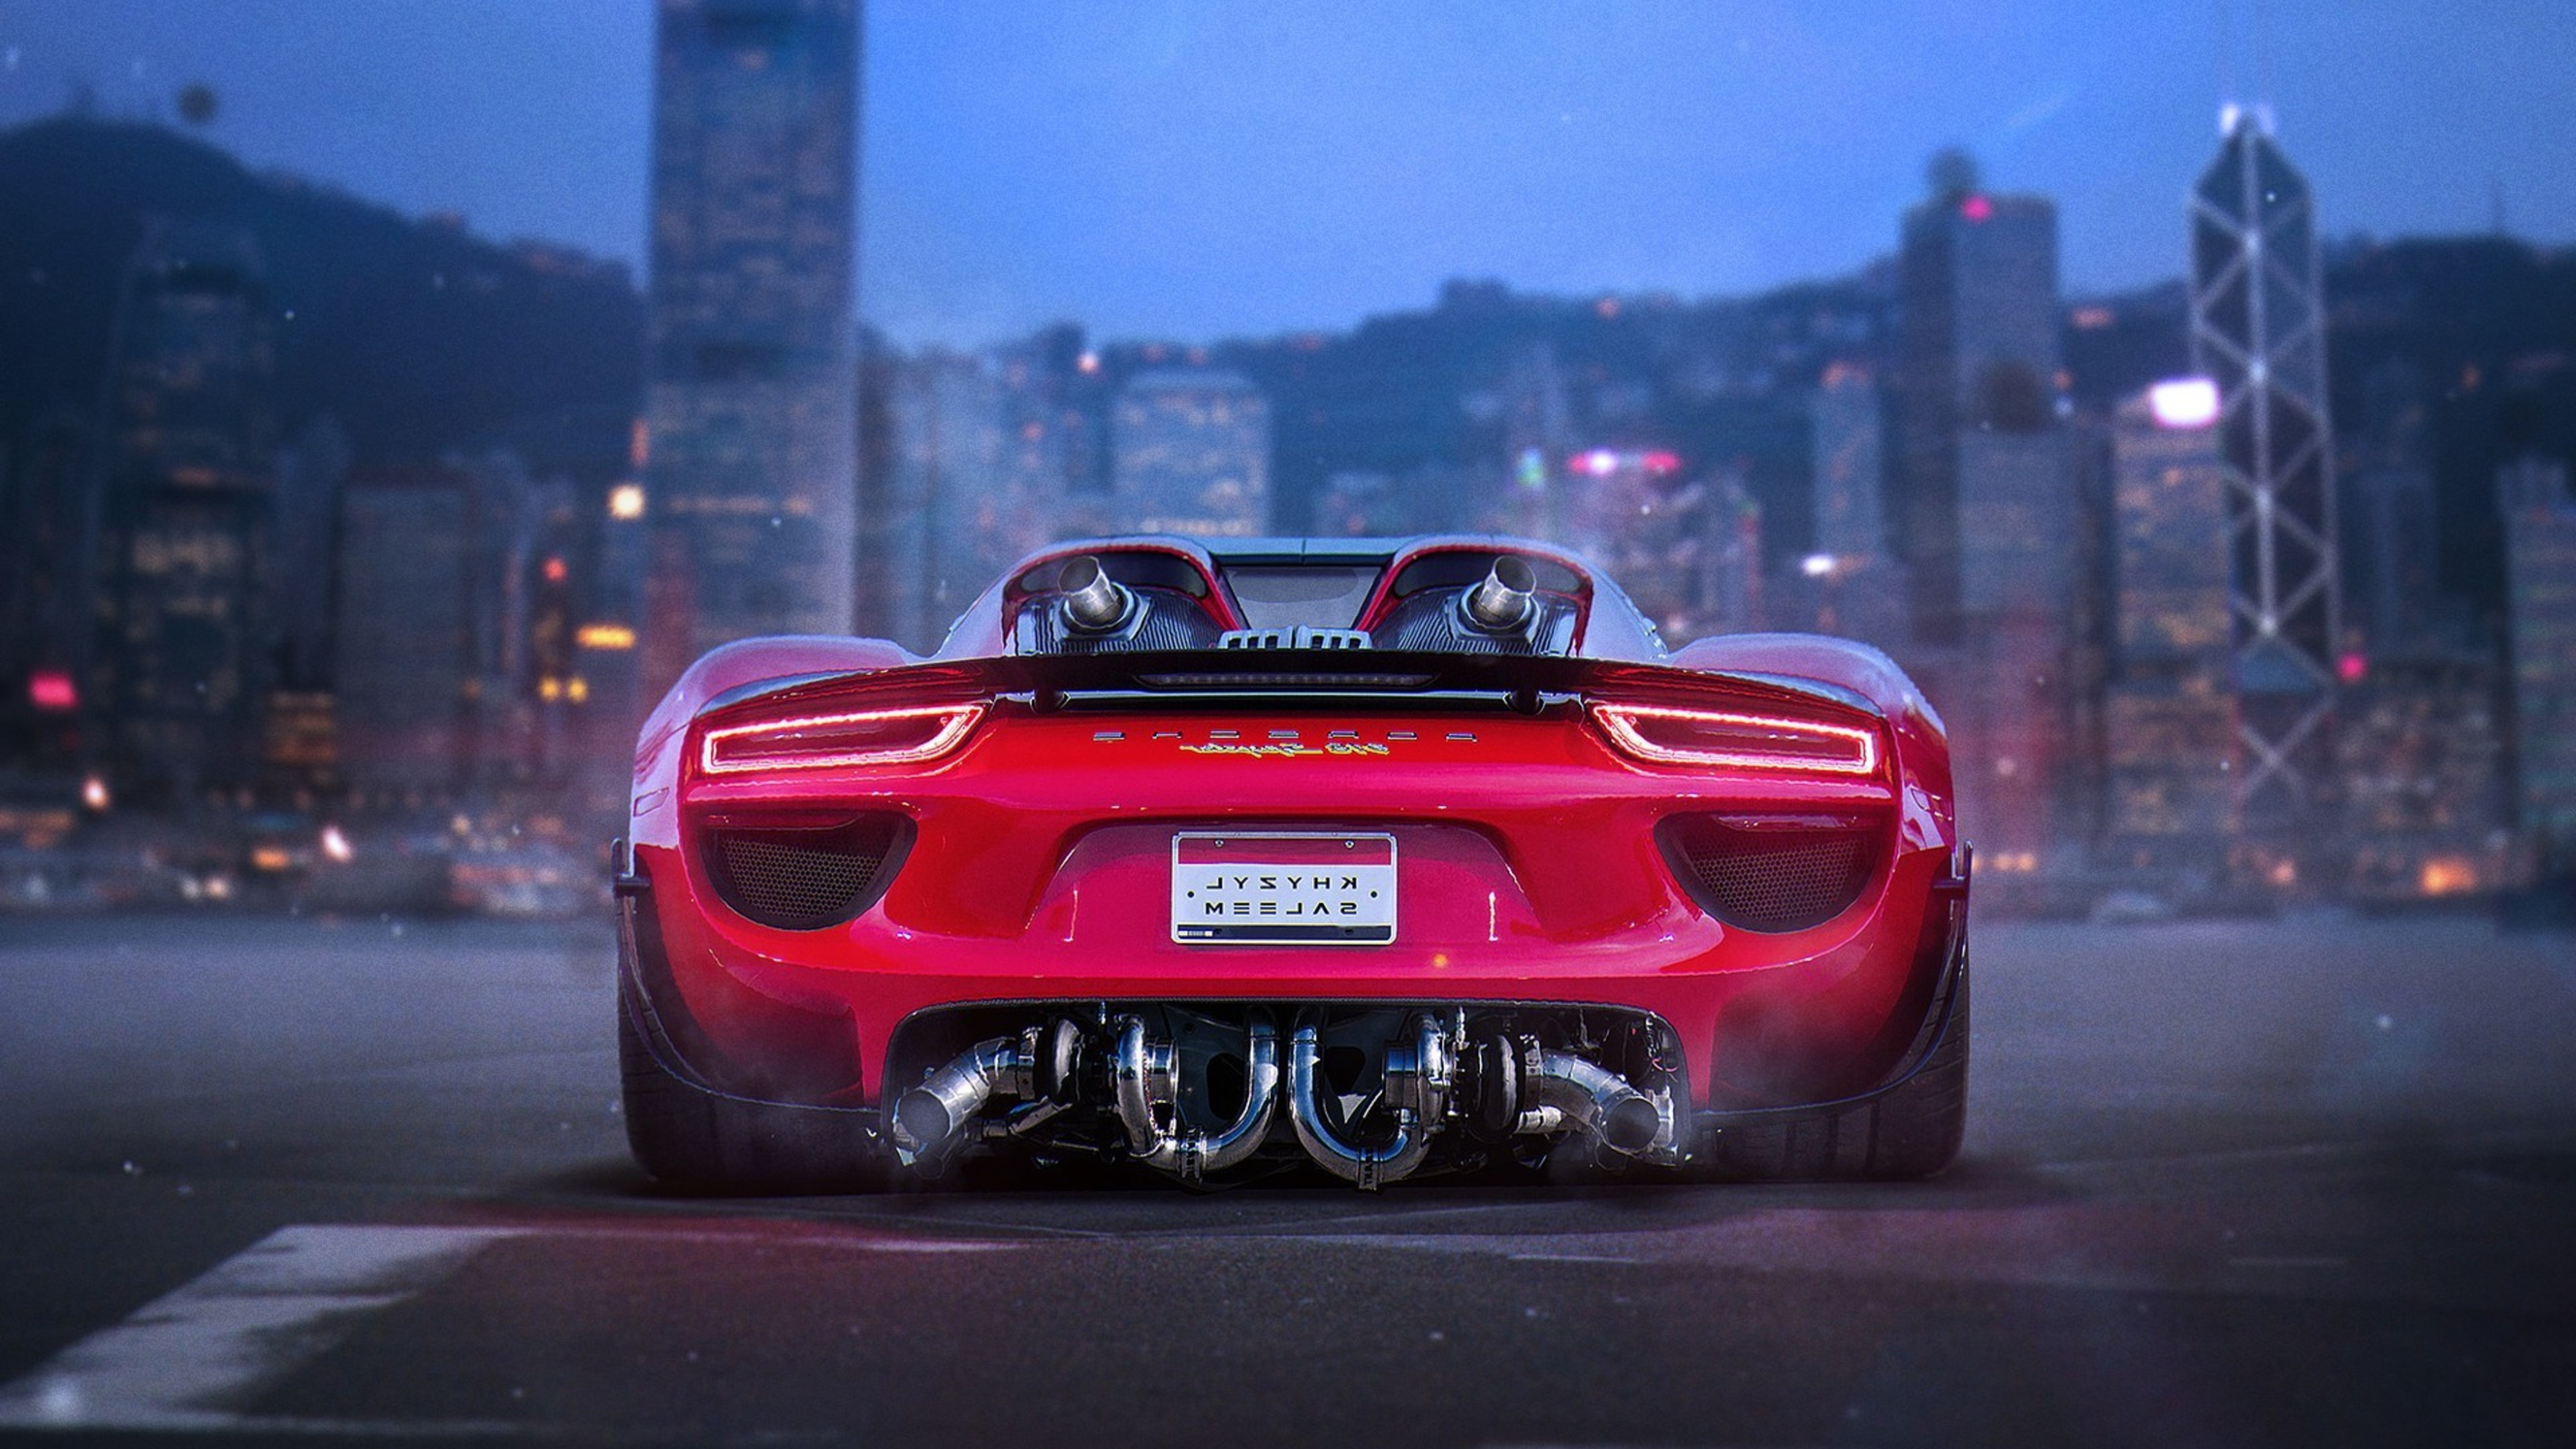 Porsche 918 Spyder HD 1152x864 Resolution